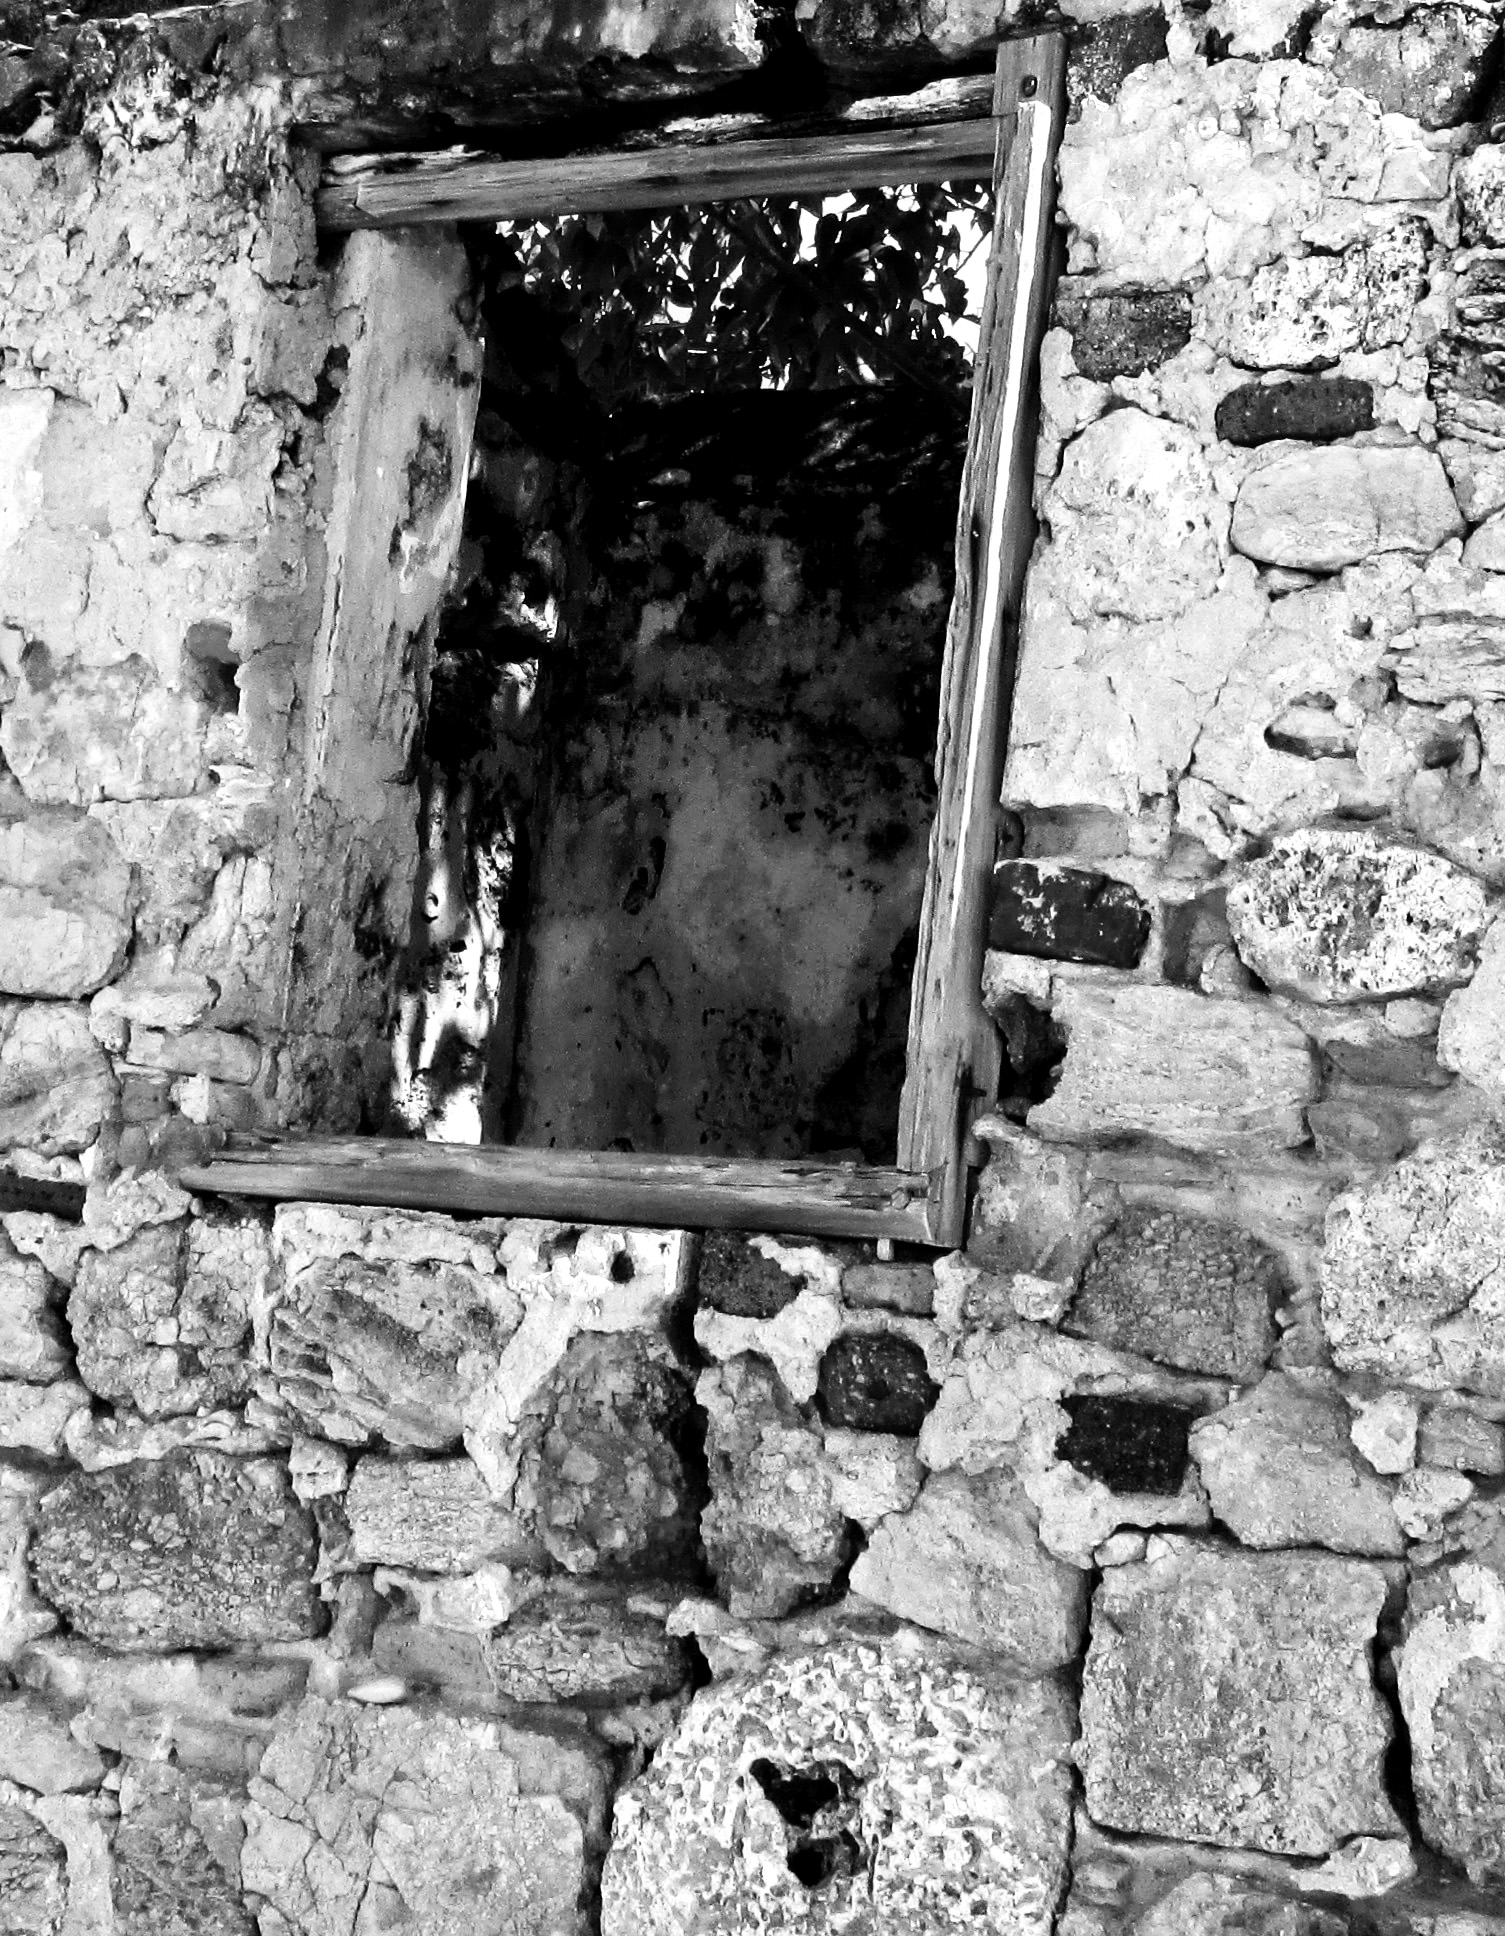 Black & White Of Rotted Beach House Window Frame